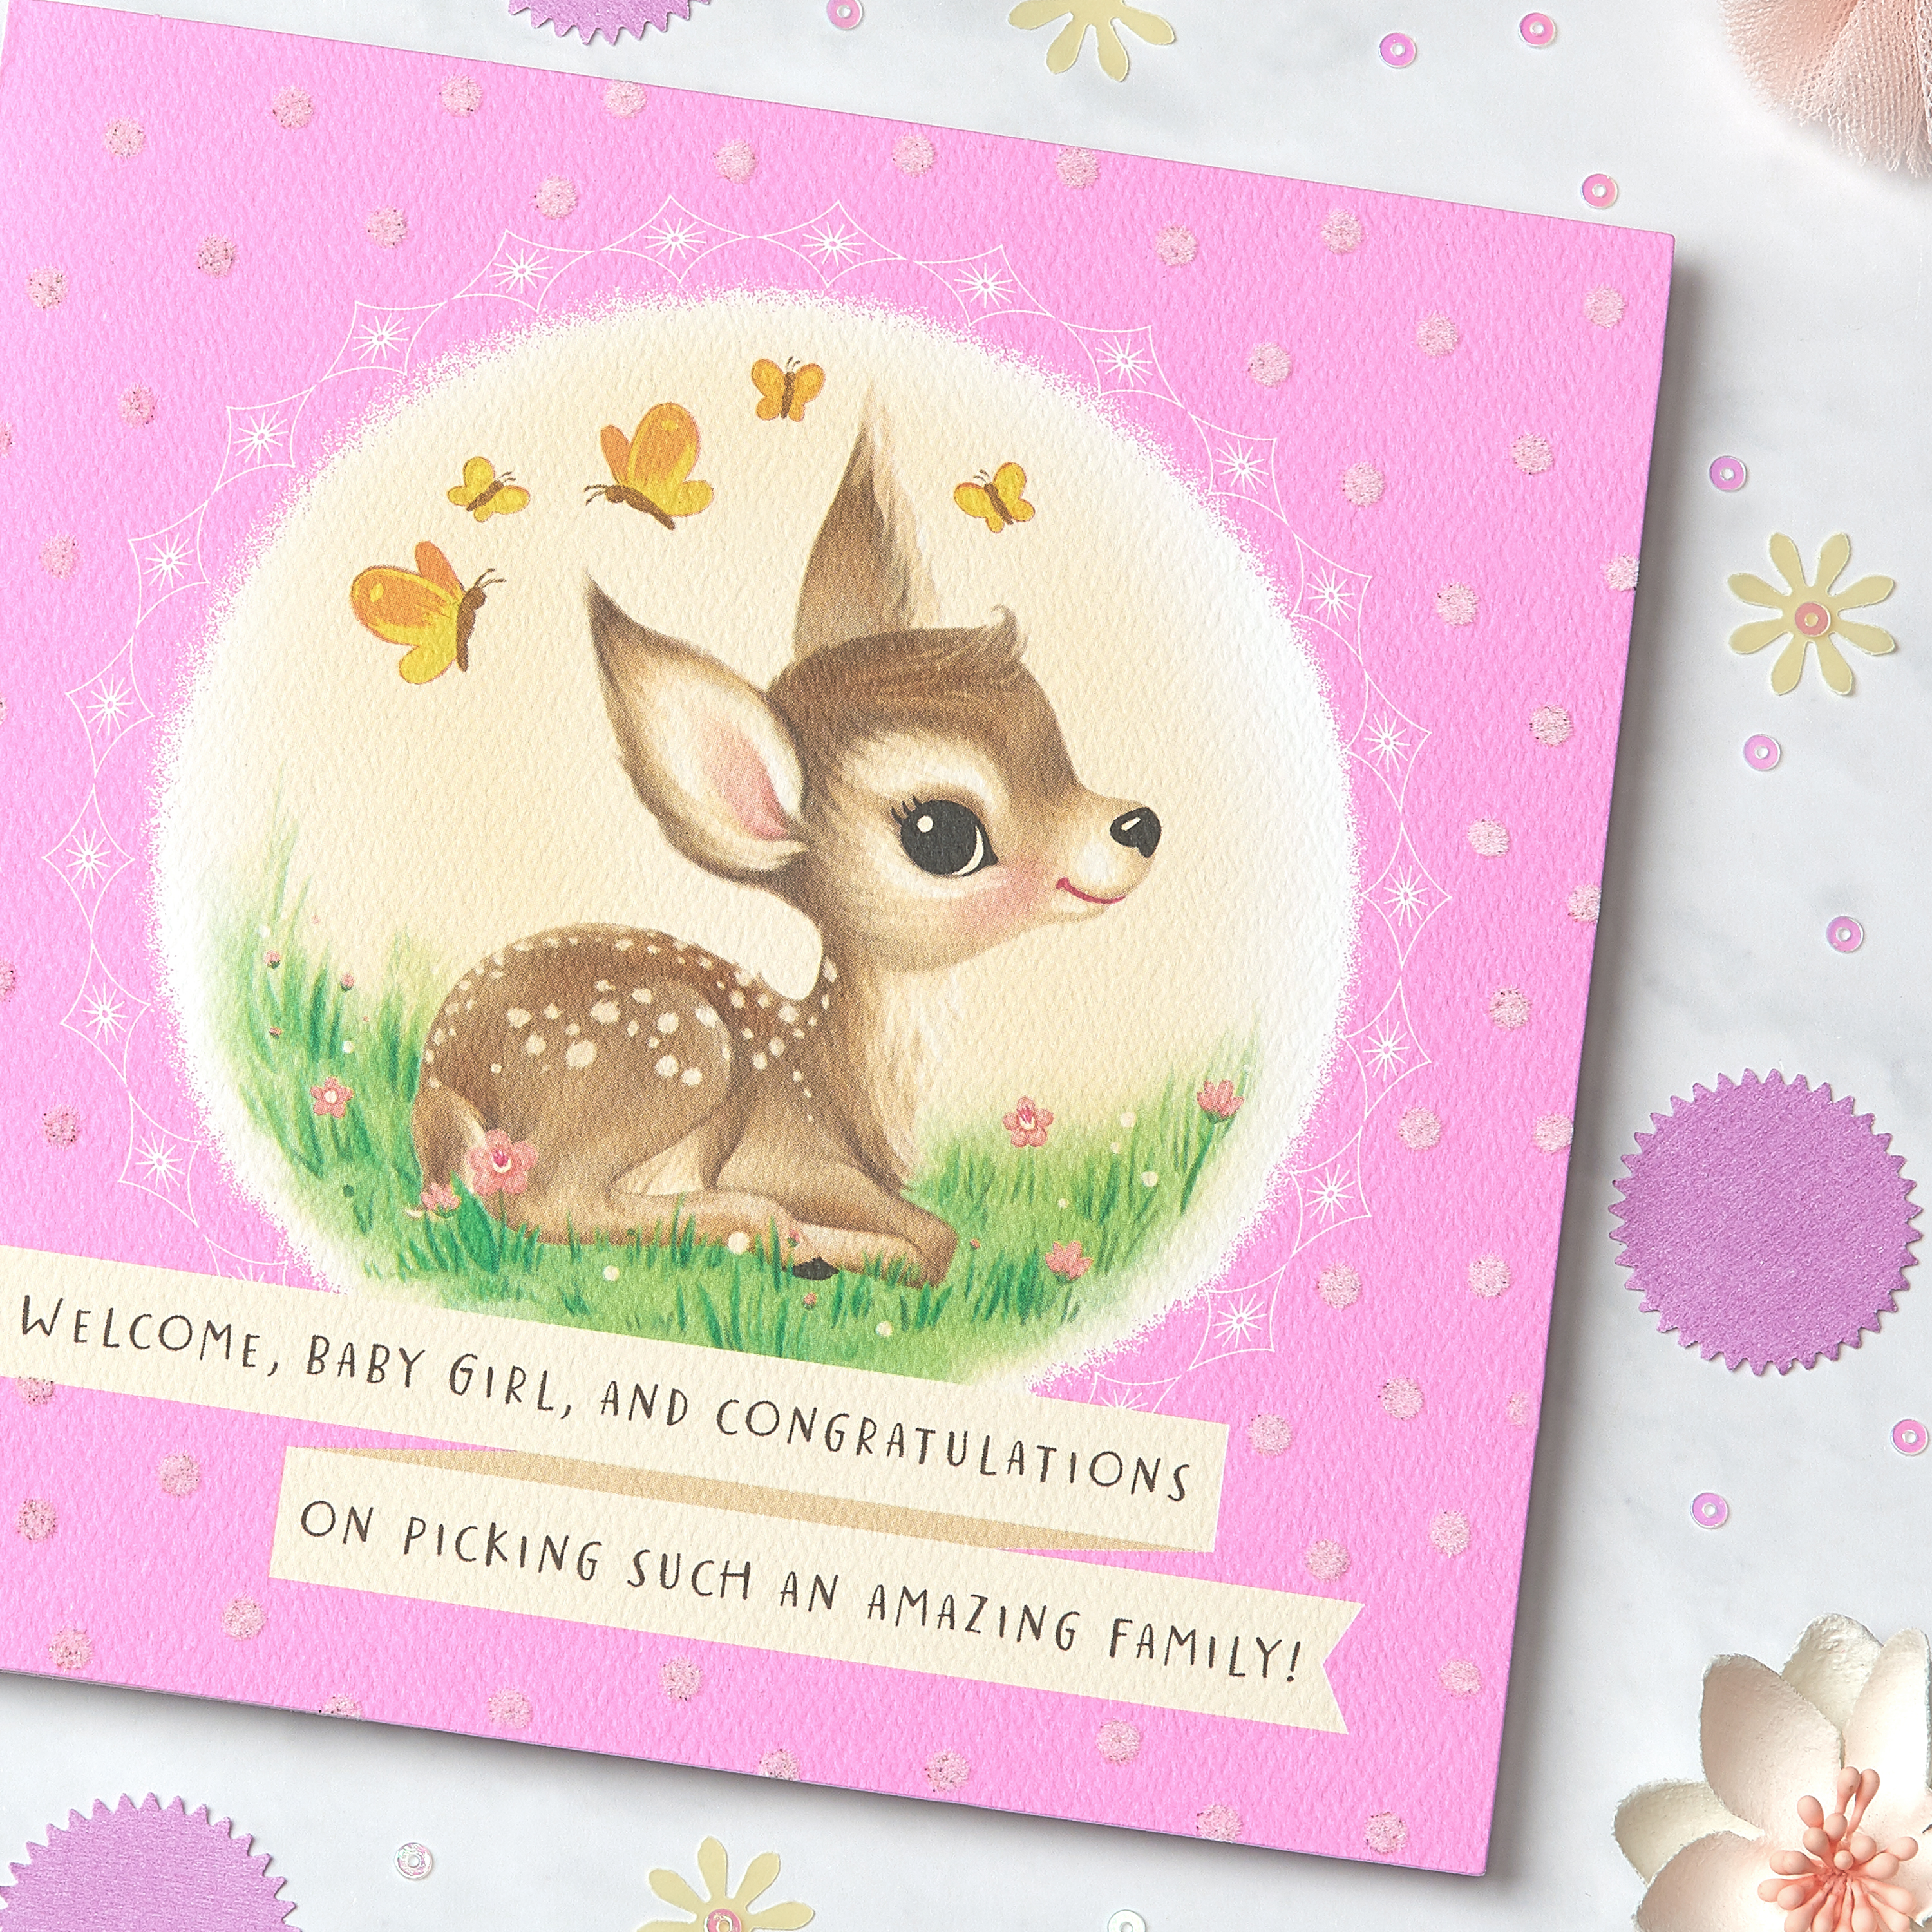 Deer New Baby Girl Congratulations Greeting Card image